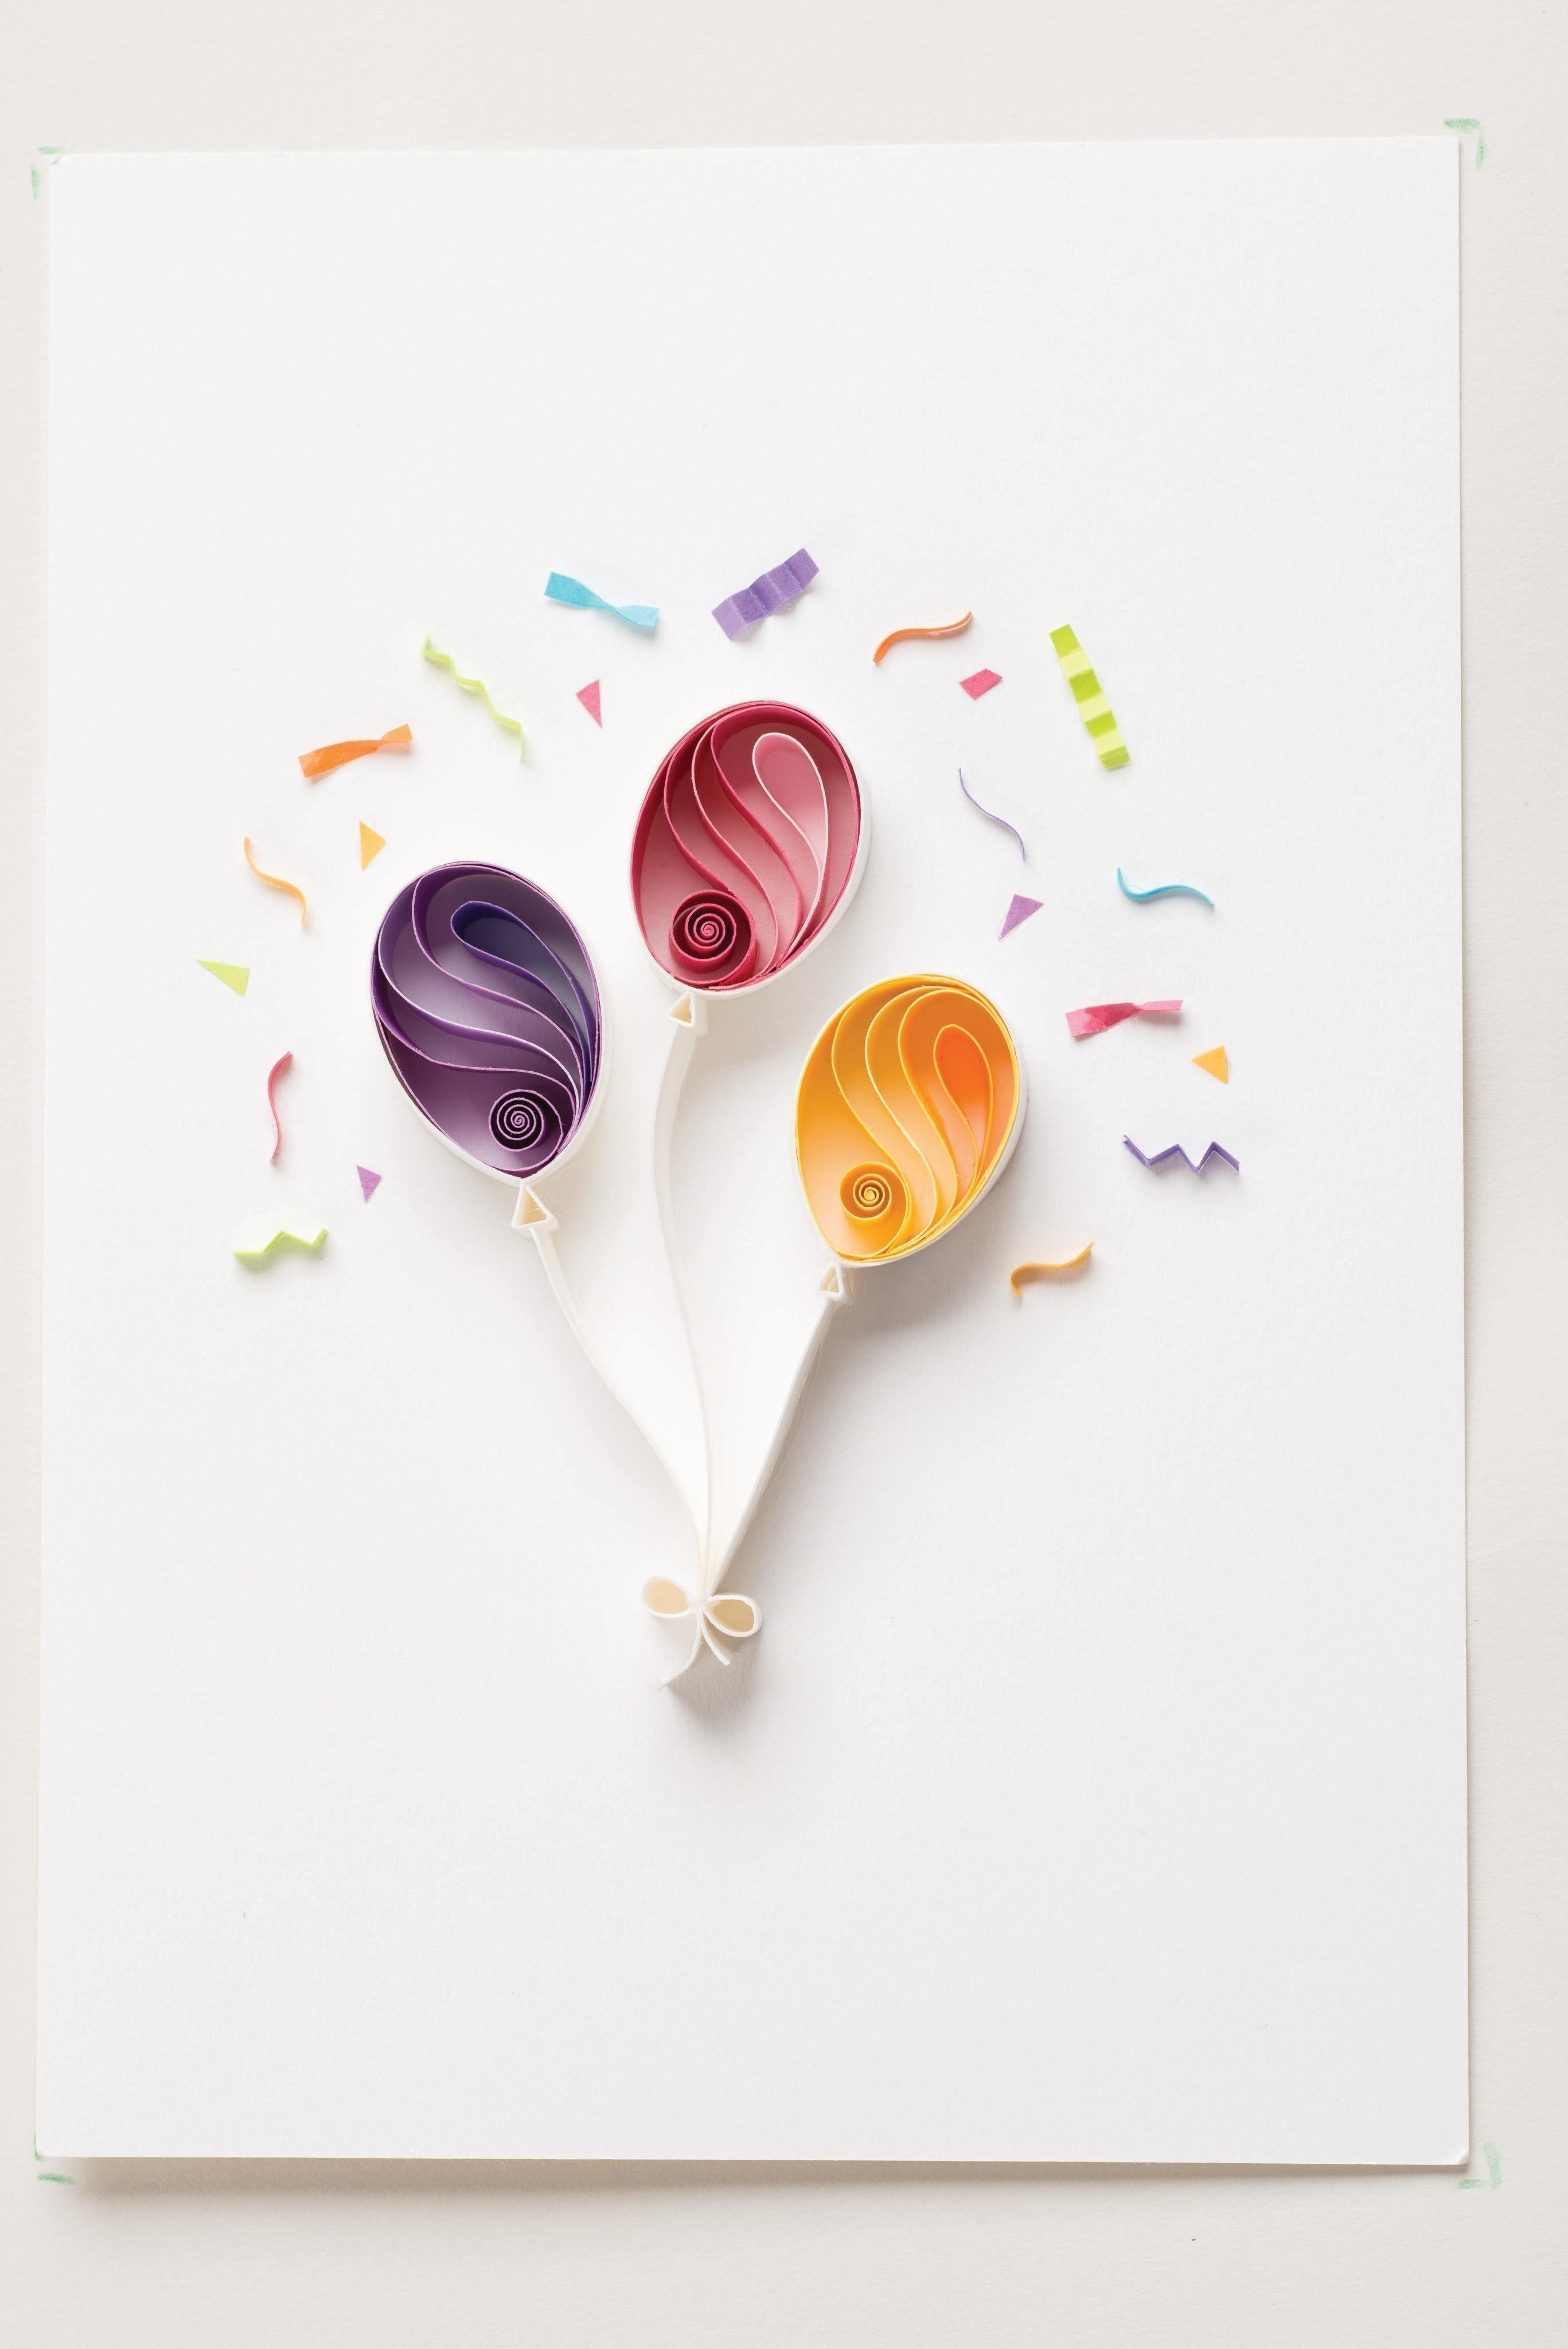 birthday balloons  u00b7 extract from quilling art by sena runa